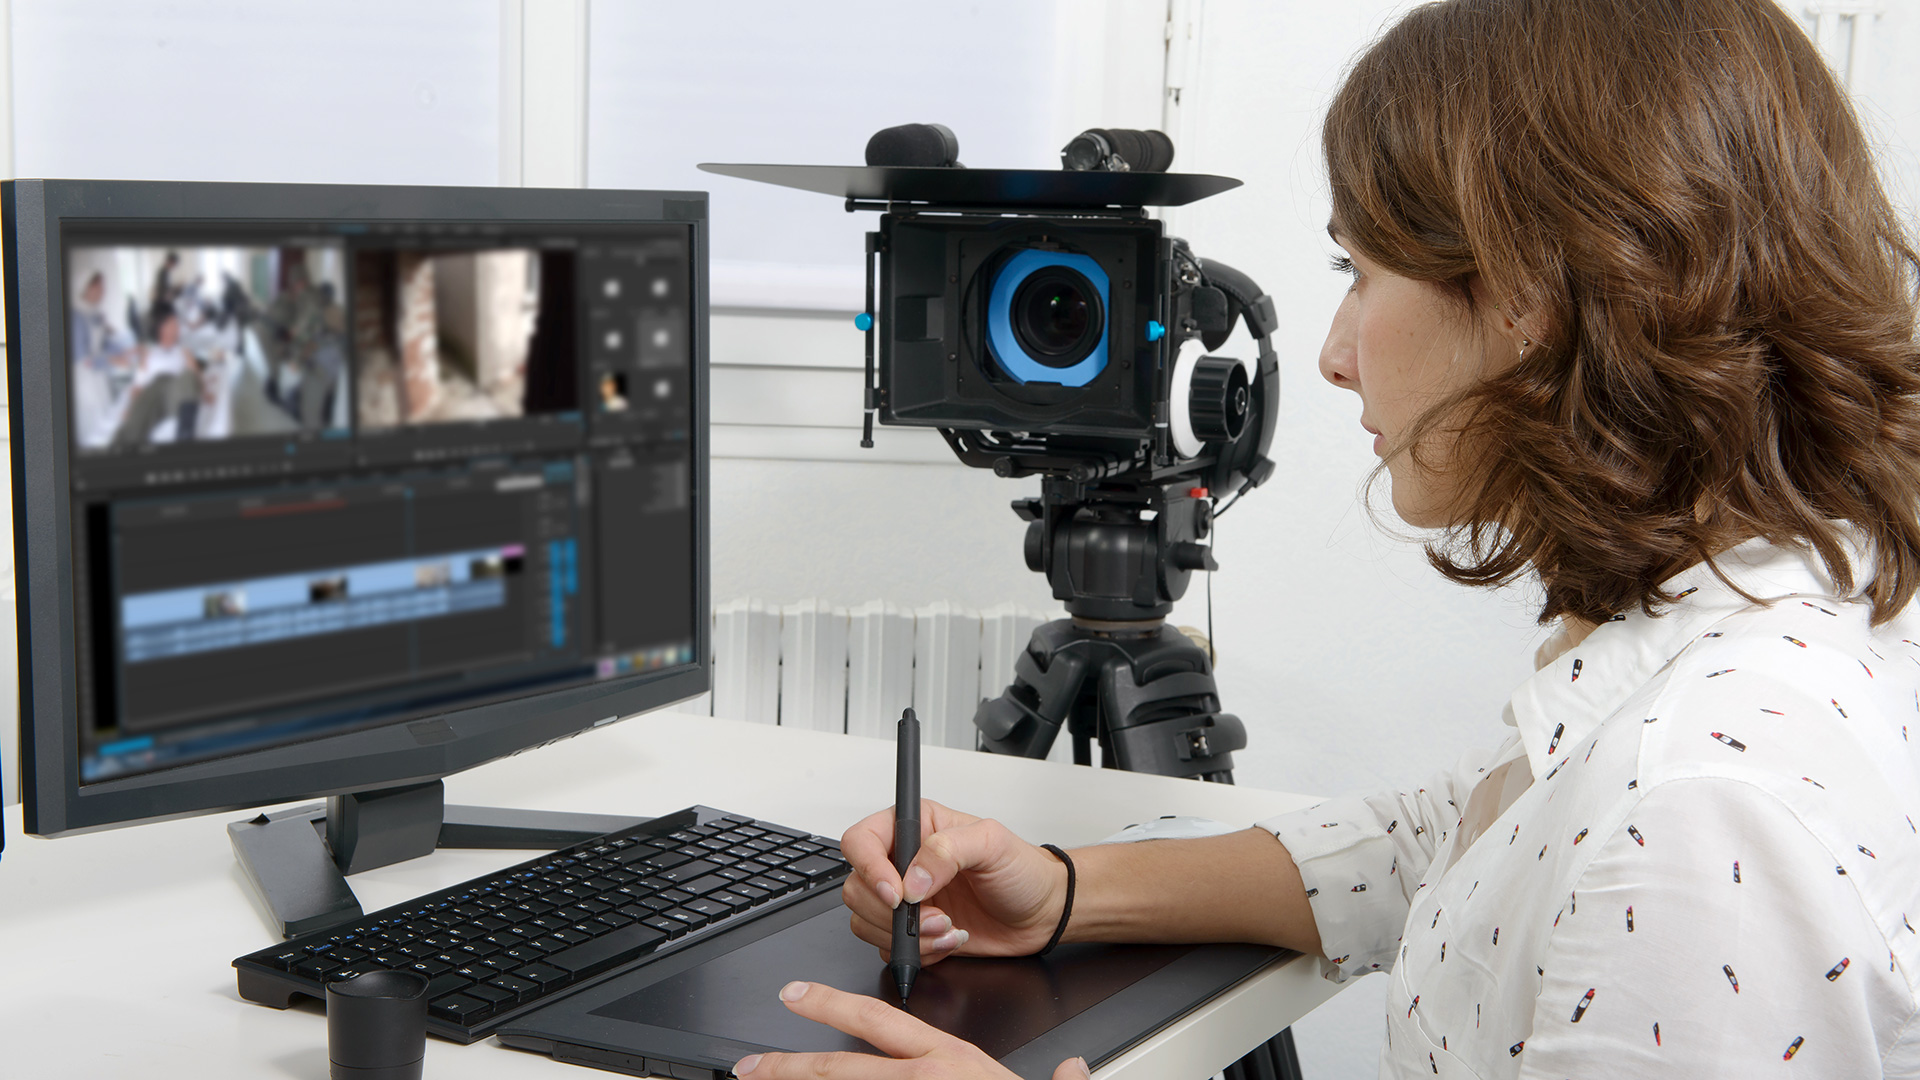 A woman edits video footage at a computer.